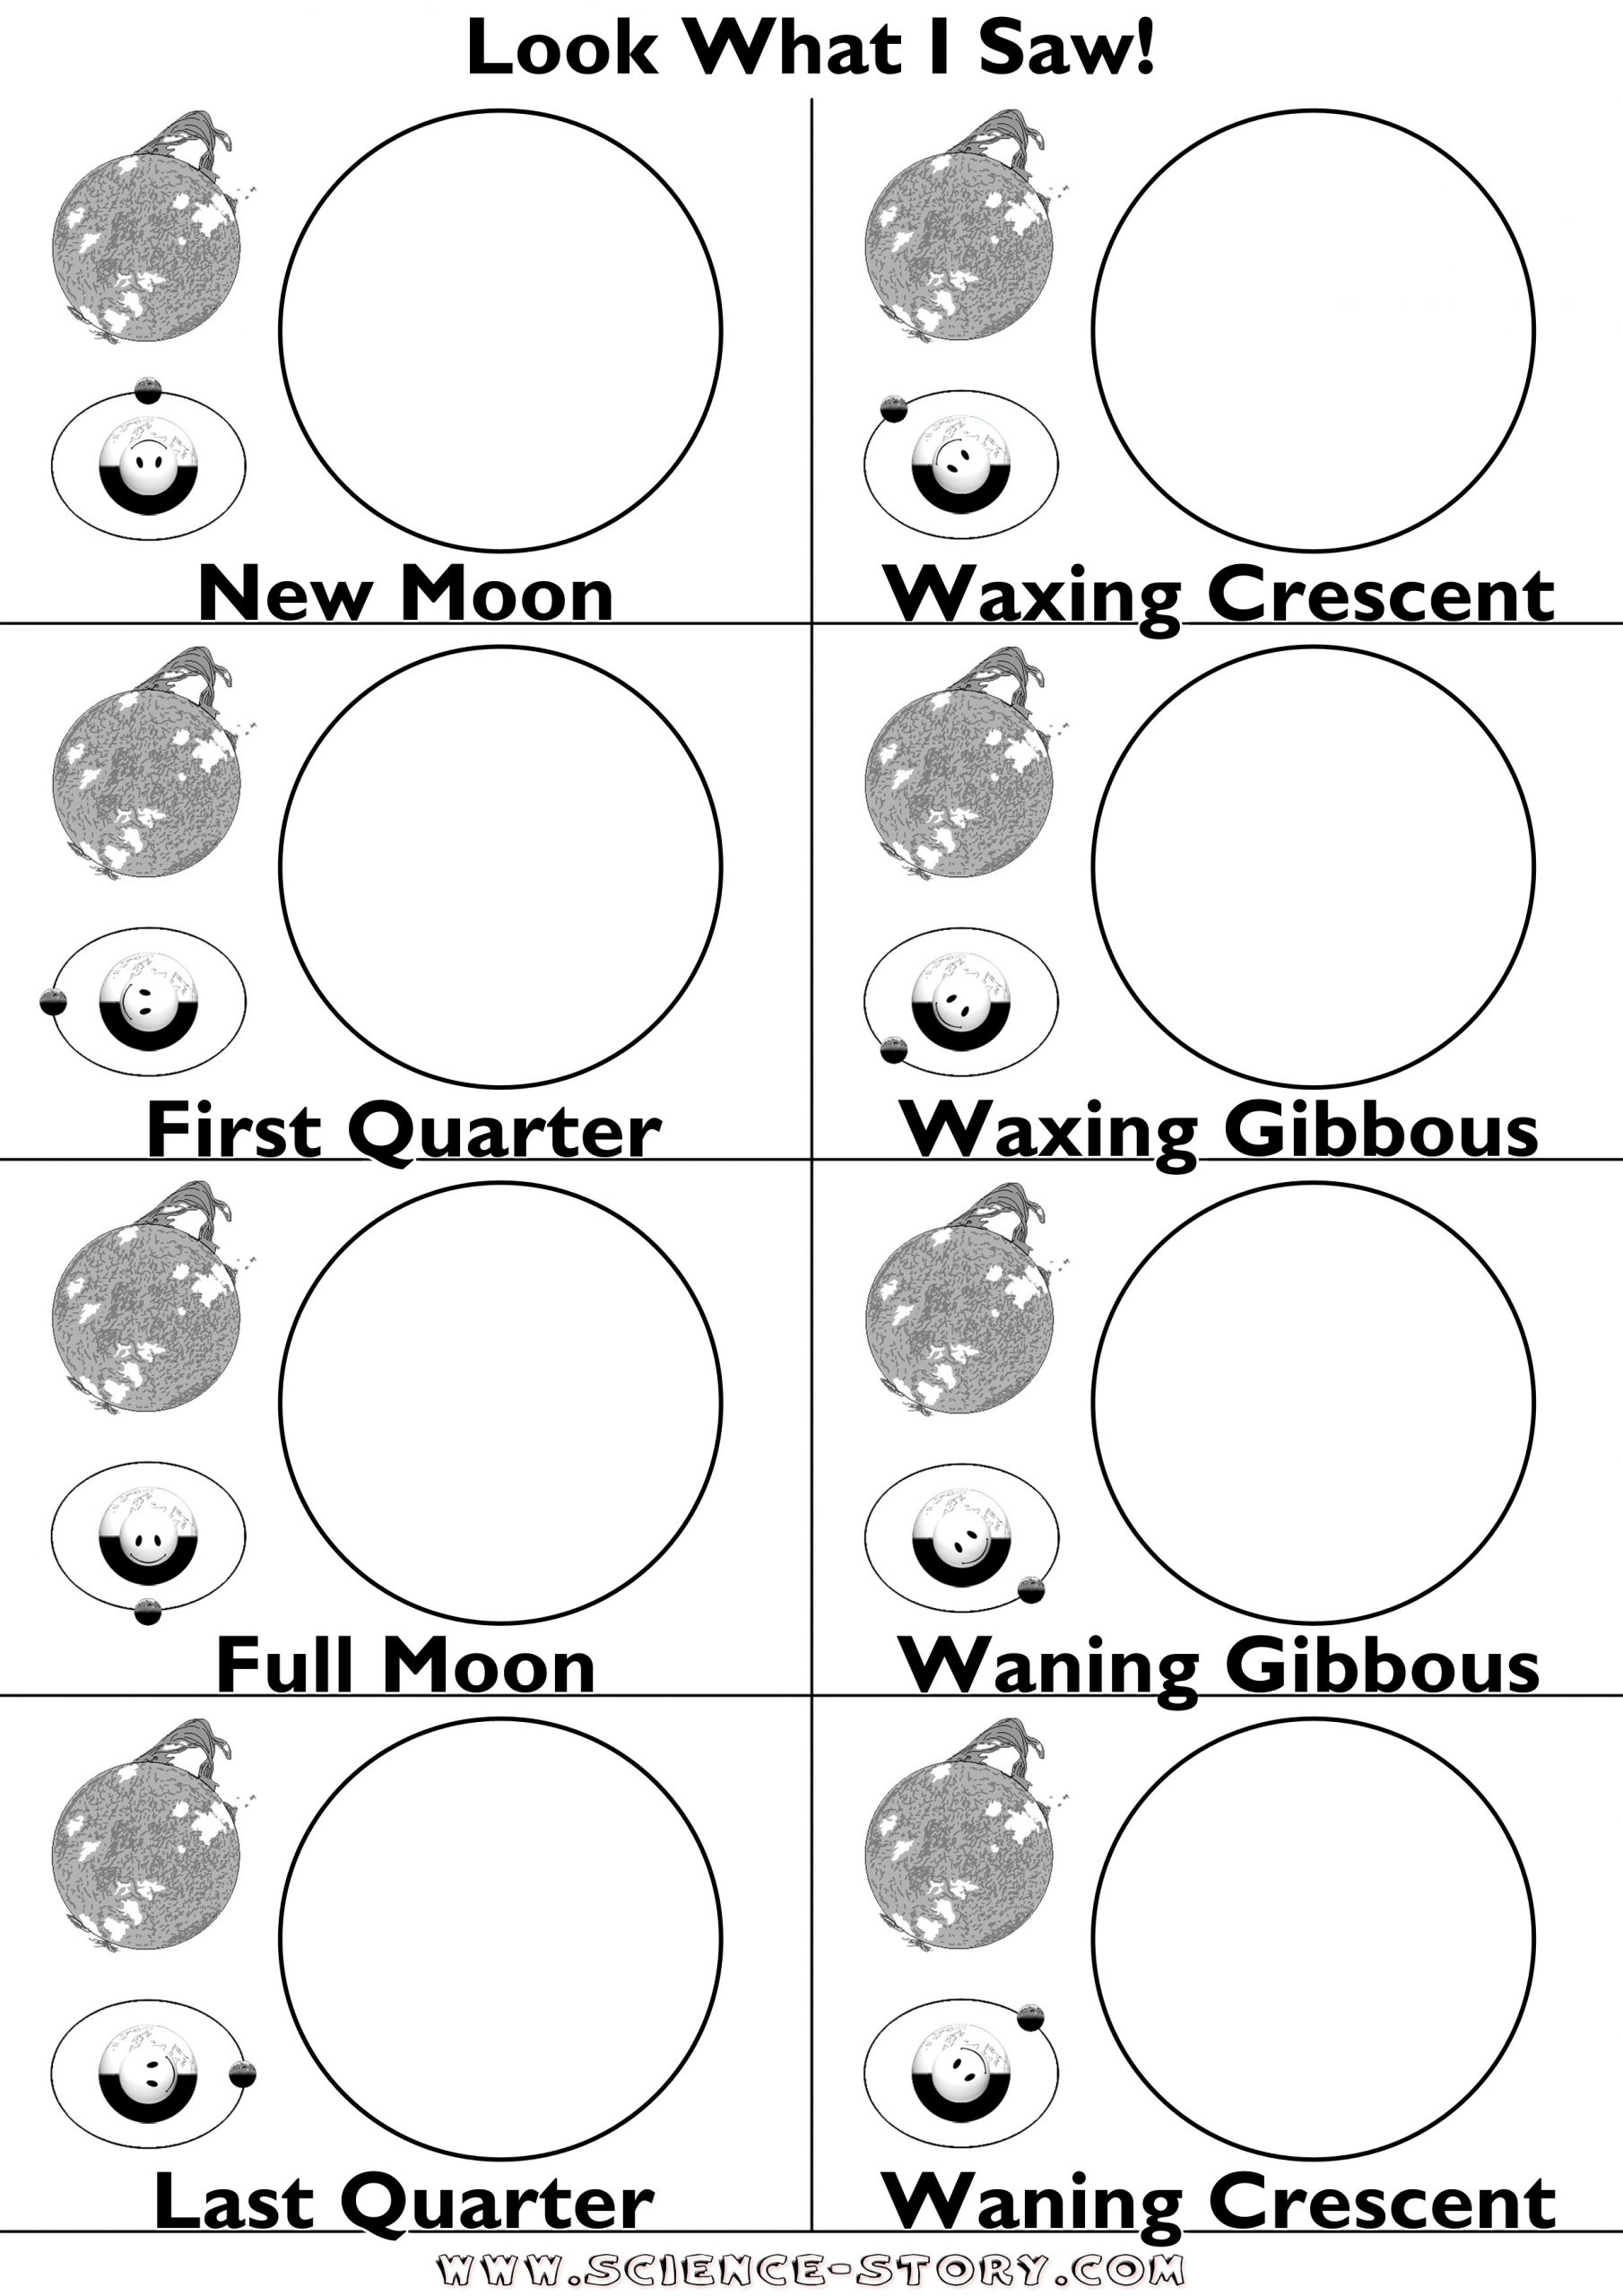 Moon Phases Worksheet Answers Moon Phases Cut and Paste Worksheet